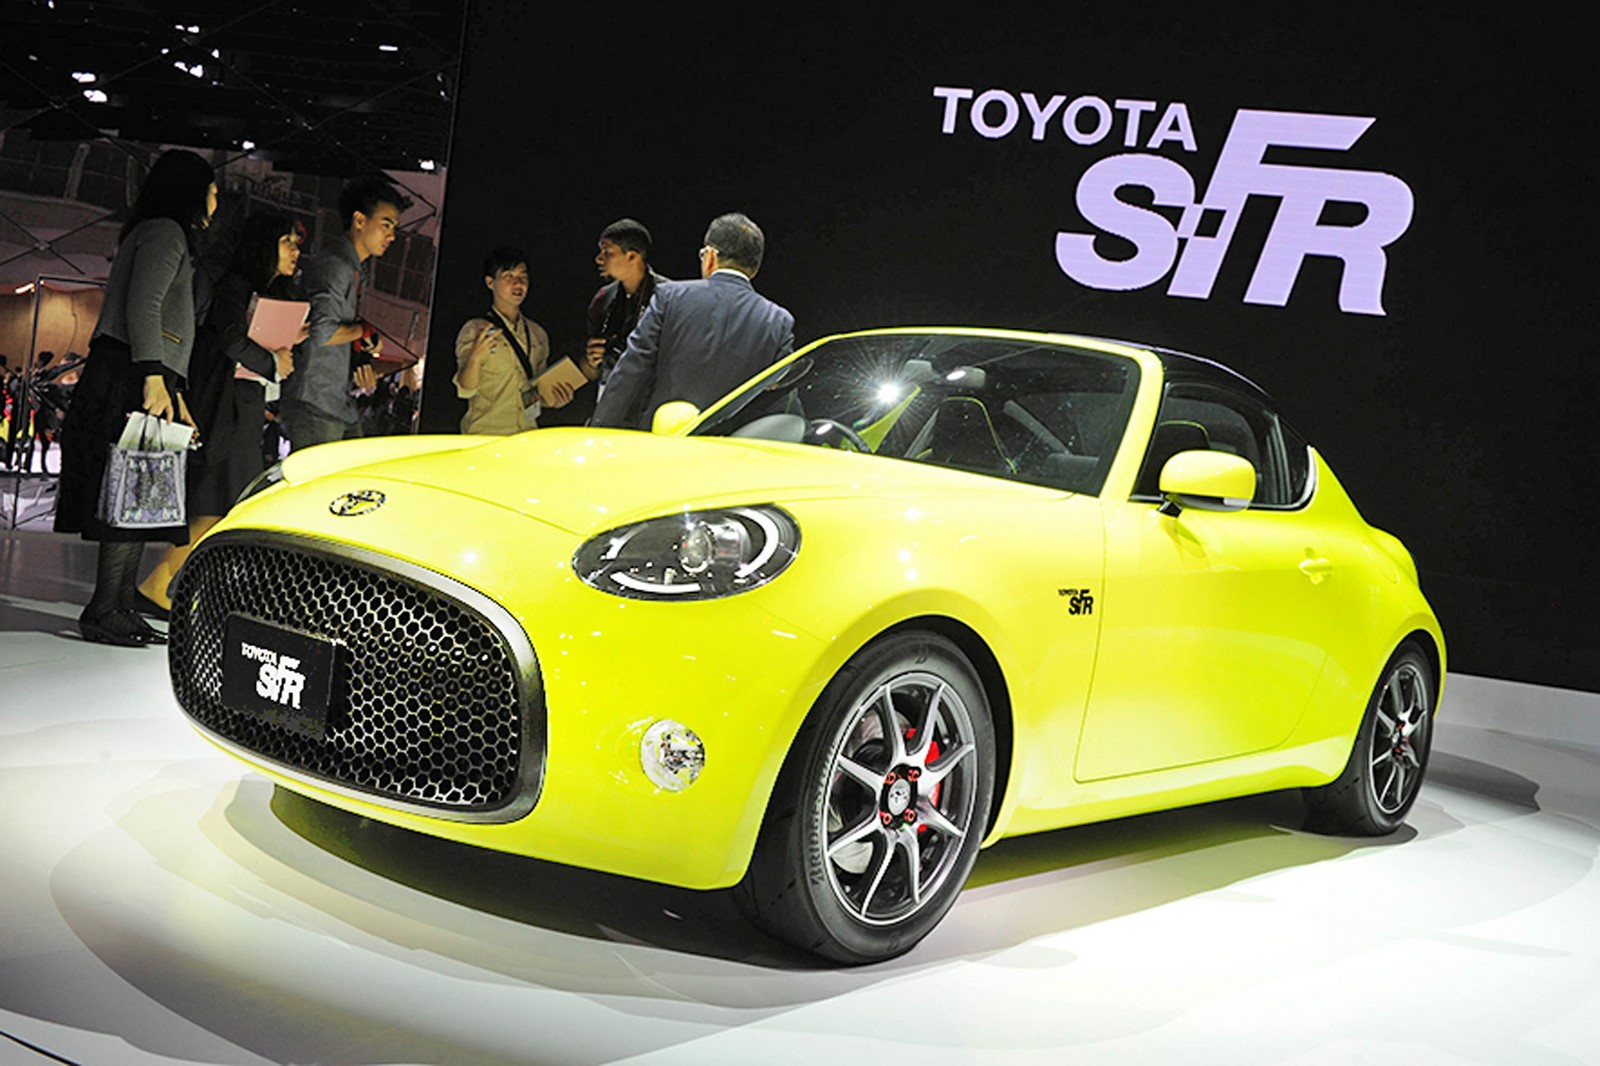 Toyota S-FR Concept (1)